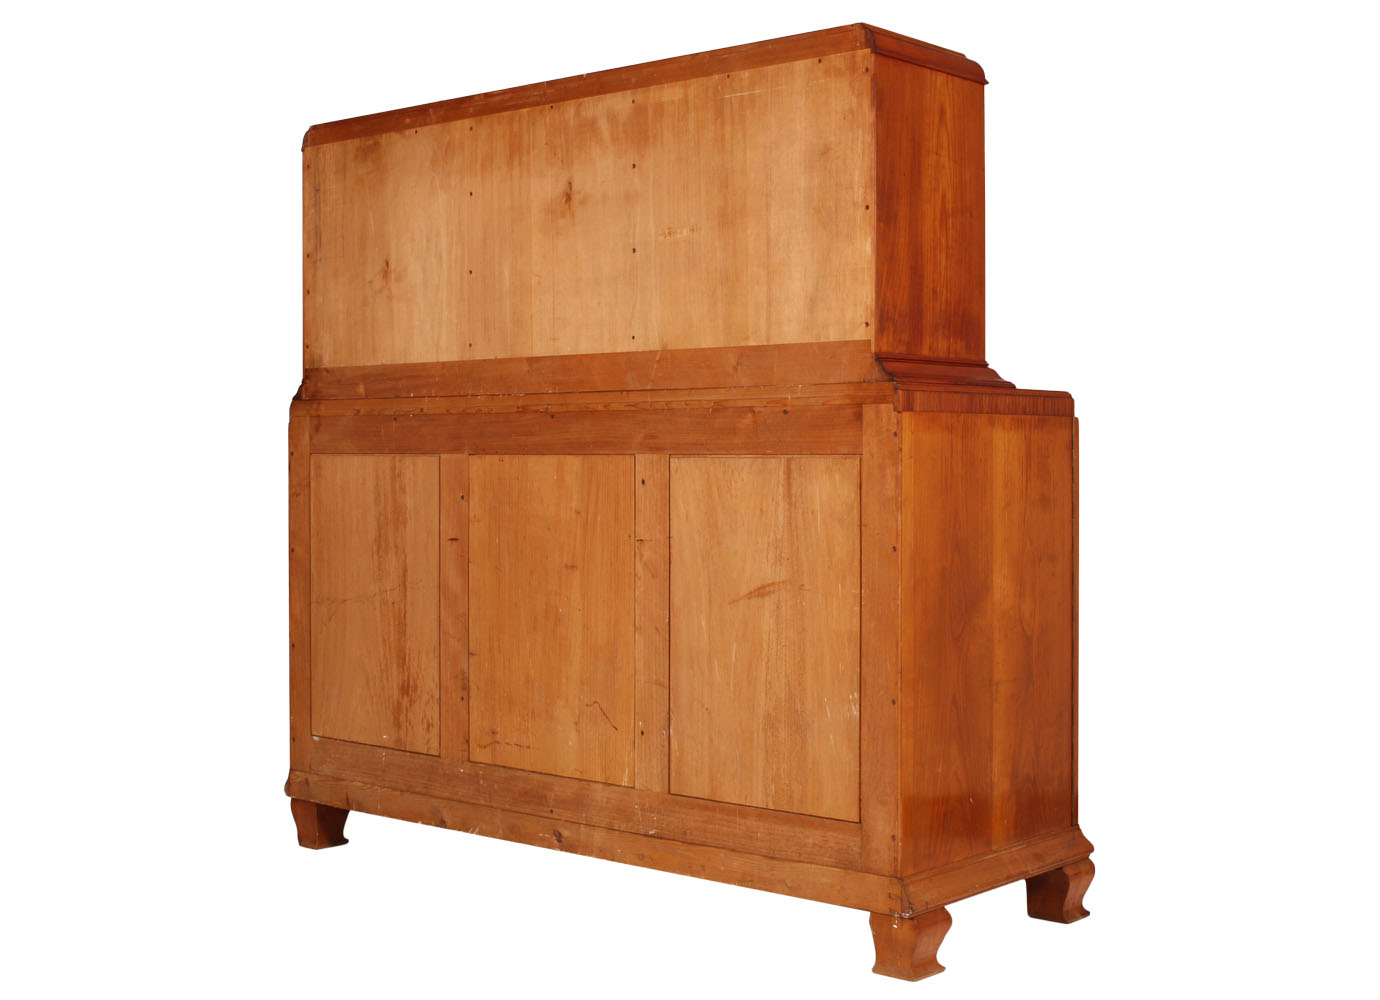 antique-sideboard-deco-1930s-cherry-MAD16-3